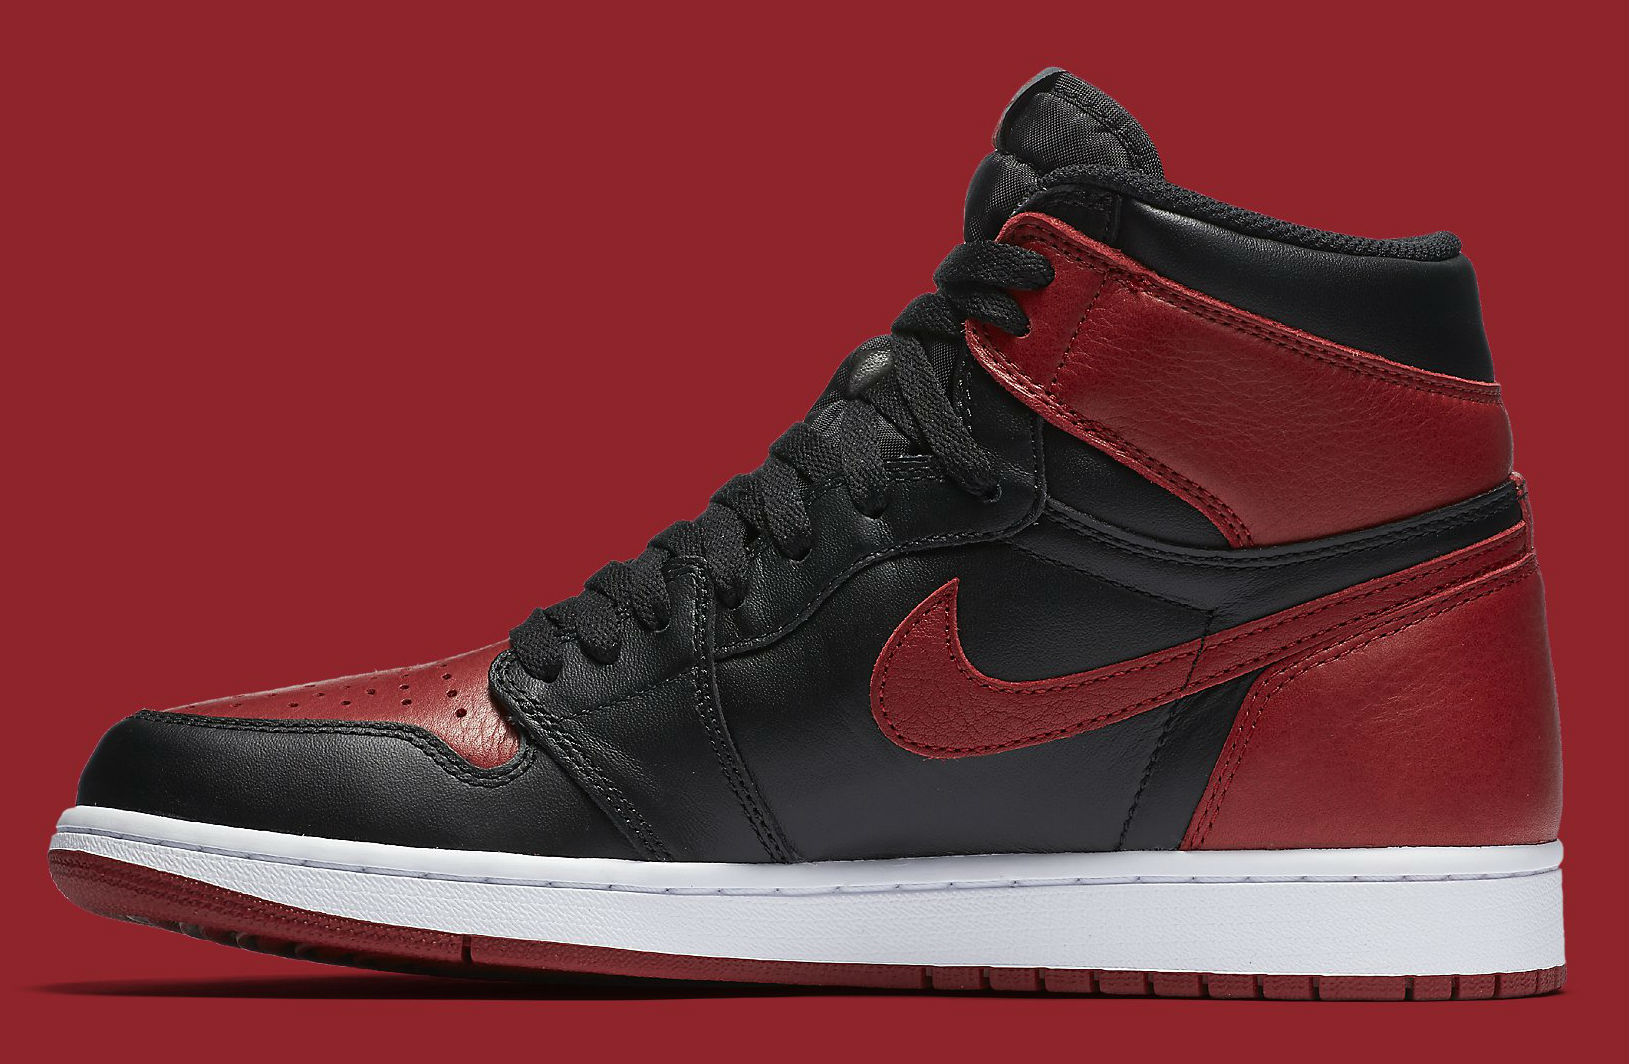 f0b874bec5748a Release Date  09 03 16. Color  Black Varsity Red-White Style    555088-001.  Price   160. Air Jordan 1 Banned Side 555088-001. Air Jordan 1 Banned  Medial ...